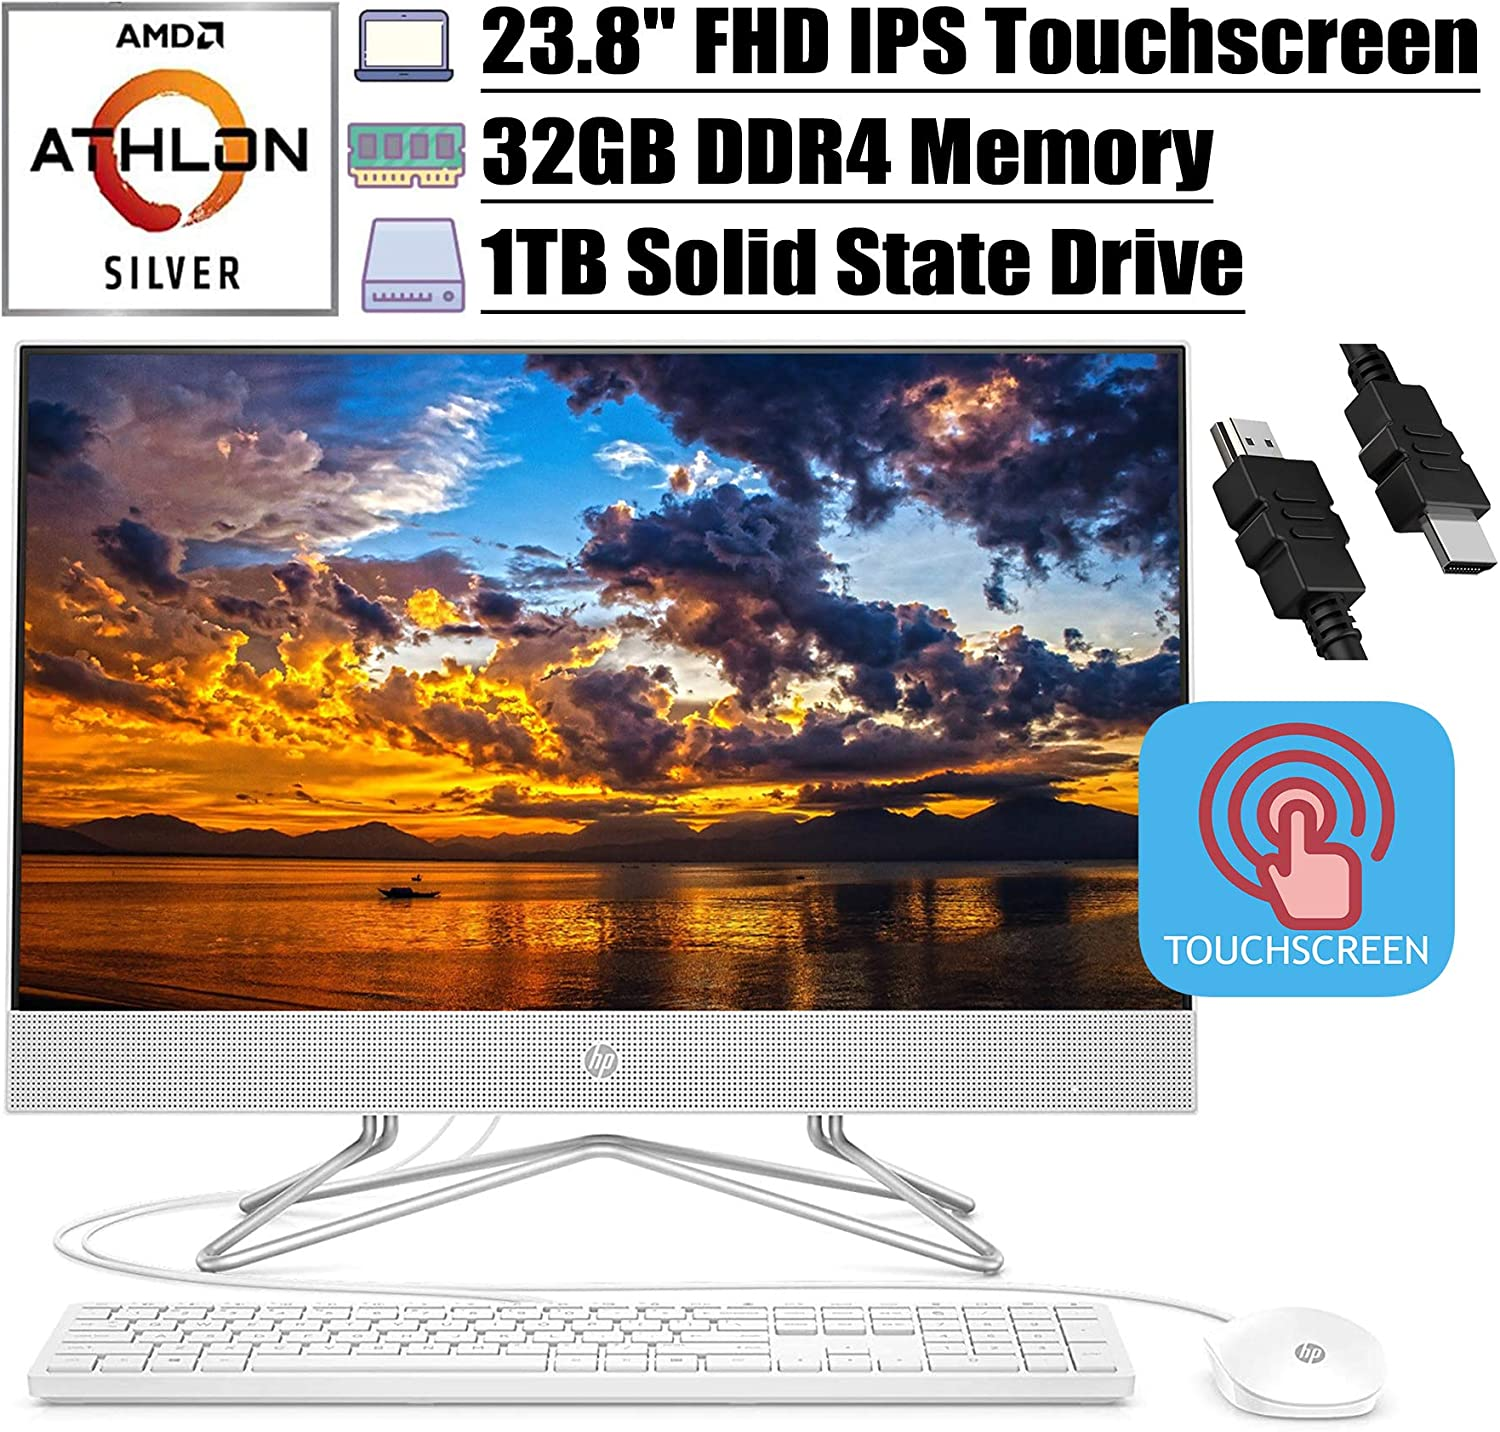 """2020 Flagship HP 24 All in One Desktop Computer 23.8""""FHD IPS Touchscreen Display AMD Athlon Silver 3050U (Beats i5-7200U) 32GB DDR4 1TB SSD DVD Webcam WiFi Keyboard Mouse Win 10 + iCarp HDMI Cable"""